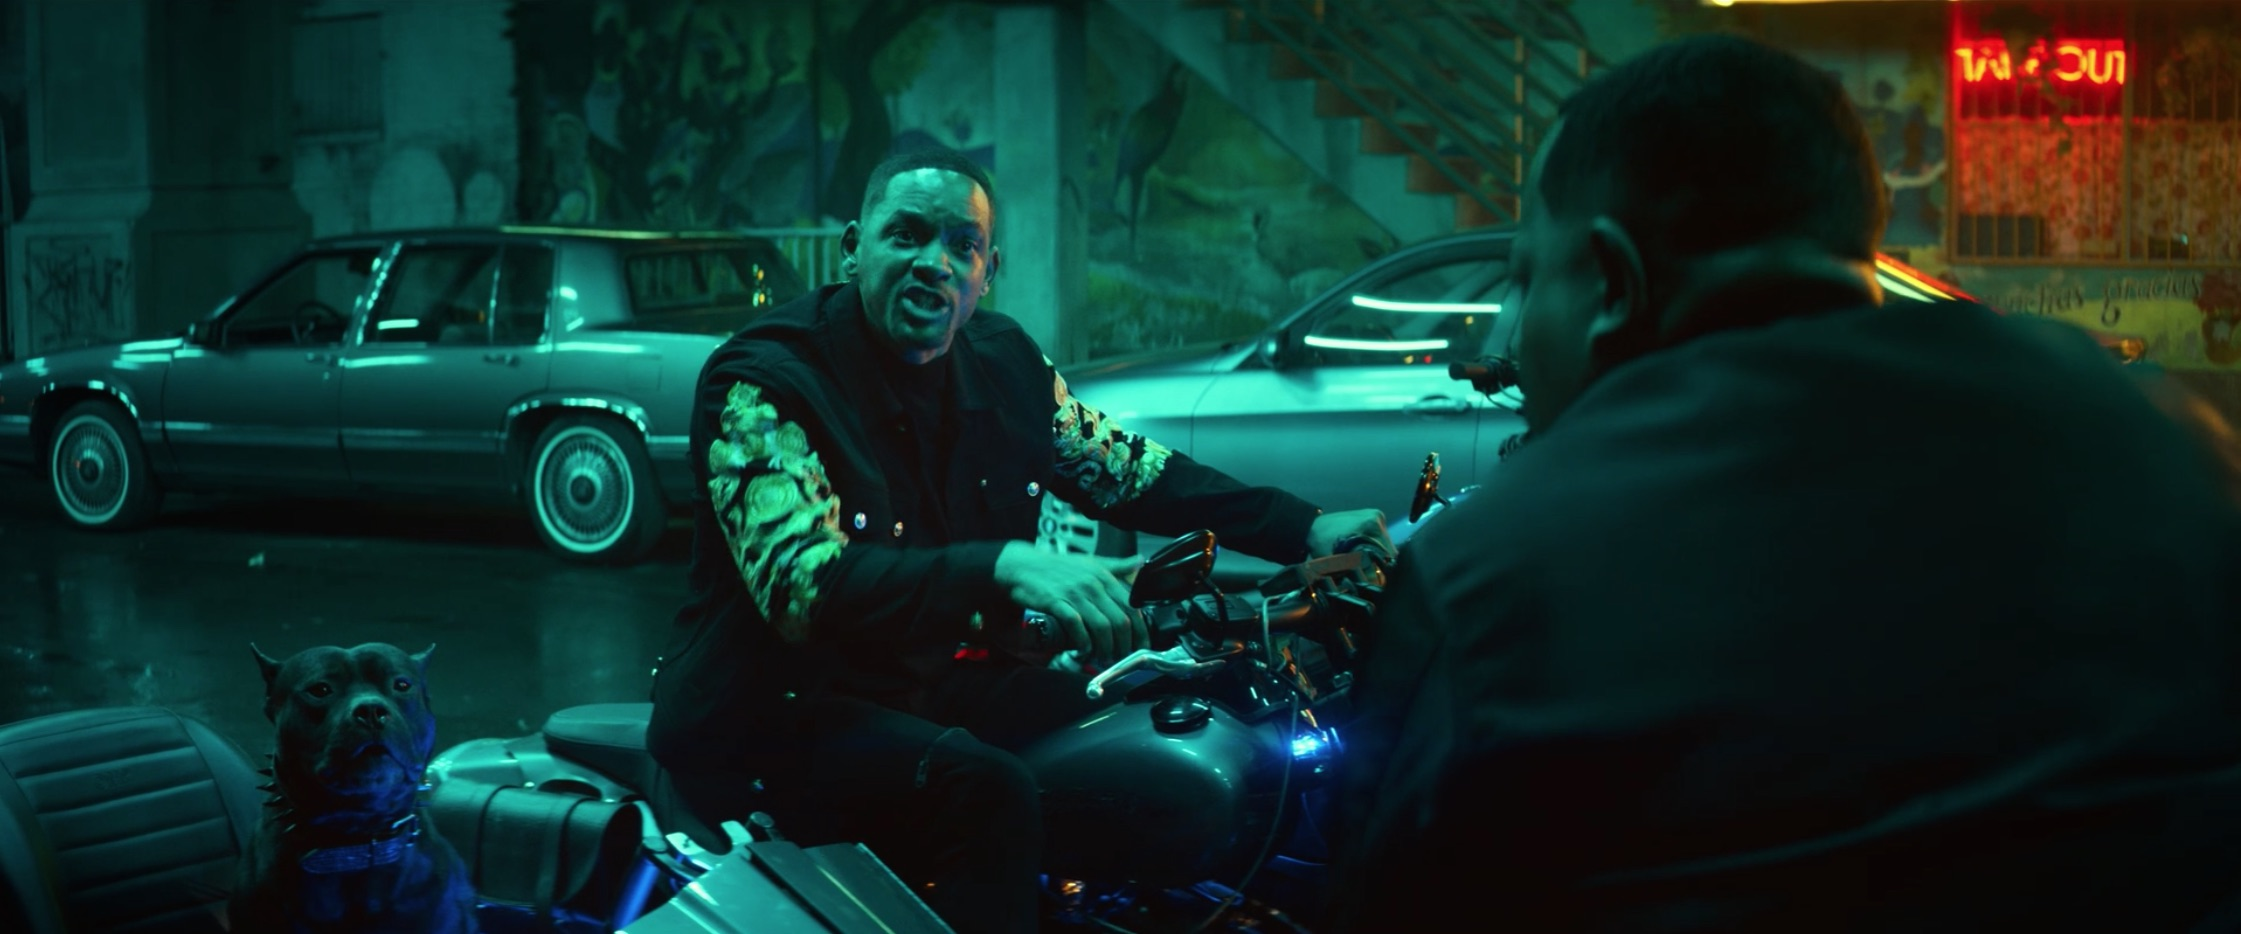 Bad Boys For Life will smith on motorcycle talking to martin lawrence